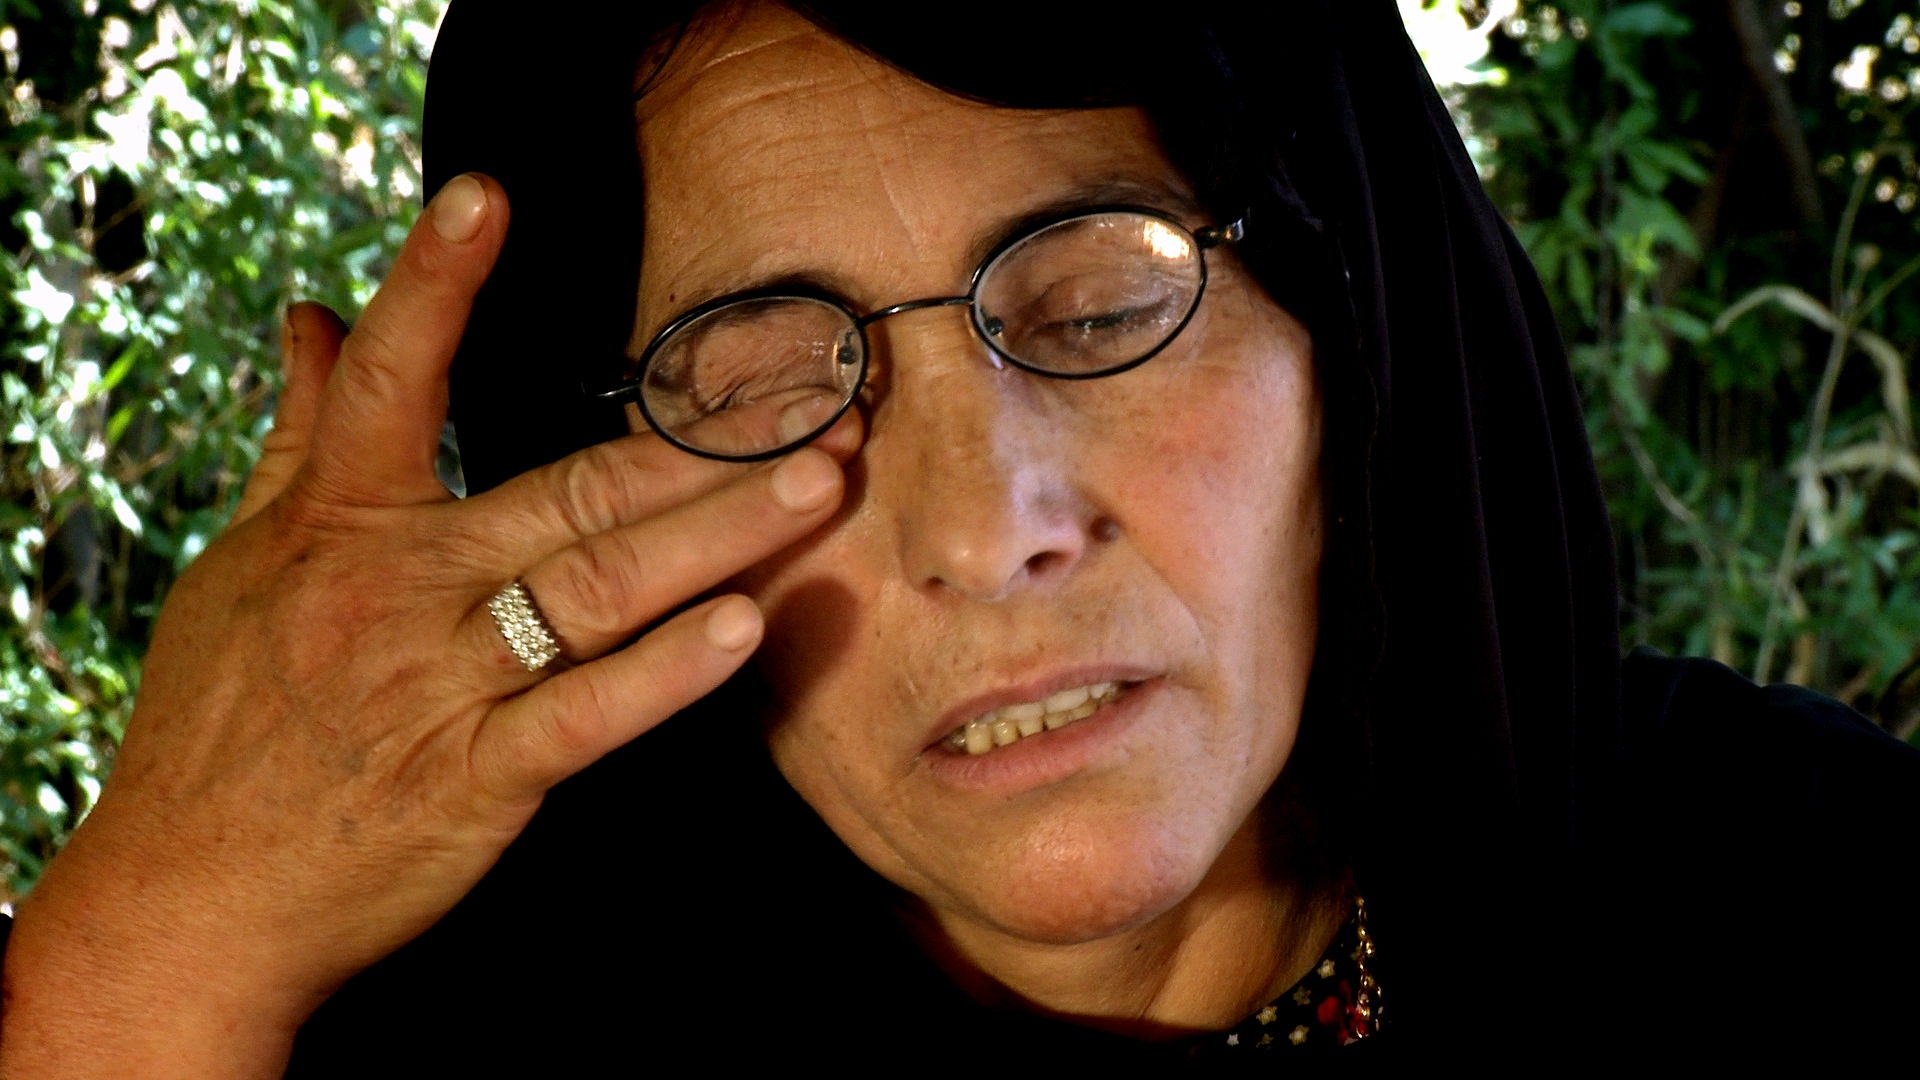 Although vomiting and unable to see, NAJIBA KHADIIR AHMED, escaped into the mountains on a donkey and sheltered in a cave. With her son hungry and in pain beside her, they stayed there until nightfall. Villagers then found them both and brought them to a hospital in Raniya. The next day, they were both imprisoned in Erbil.